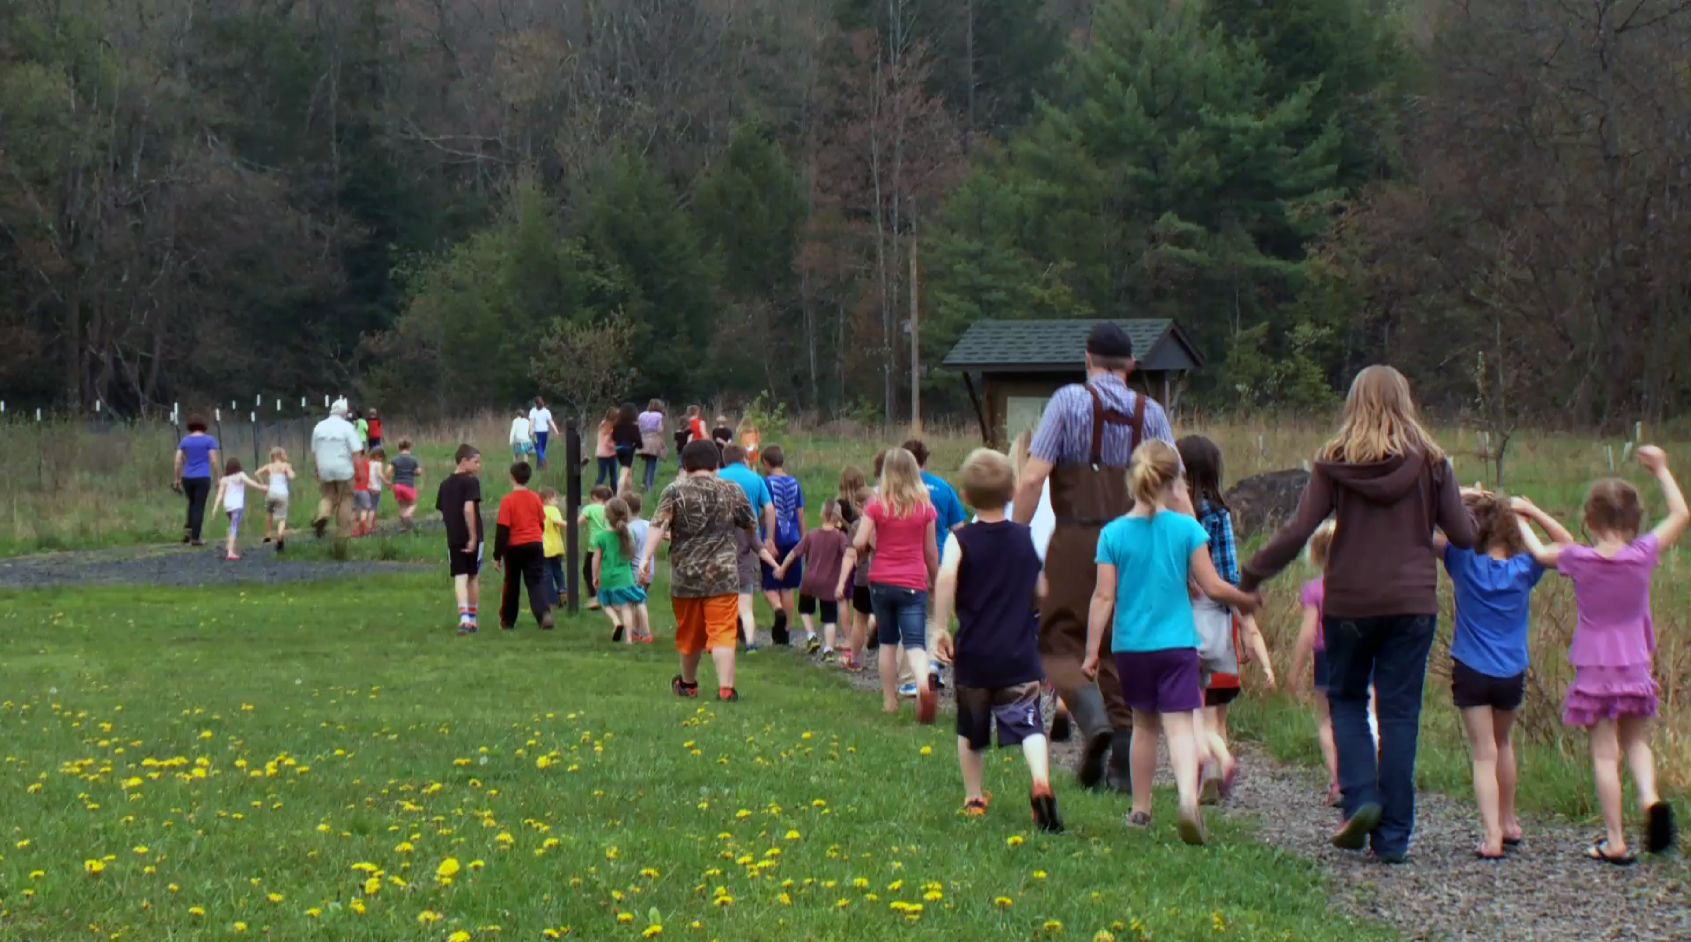 Group of teacehrs and students are on a field trip. They're walking in a green field.